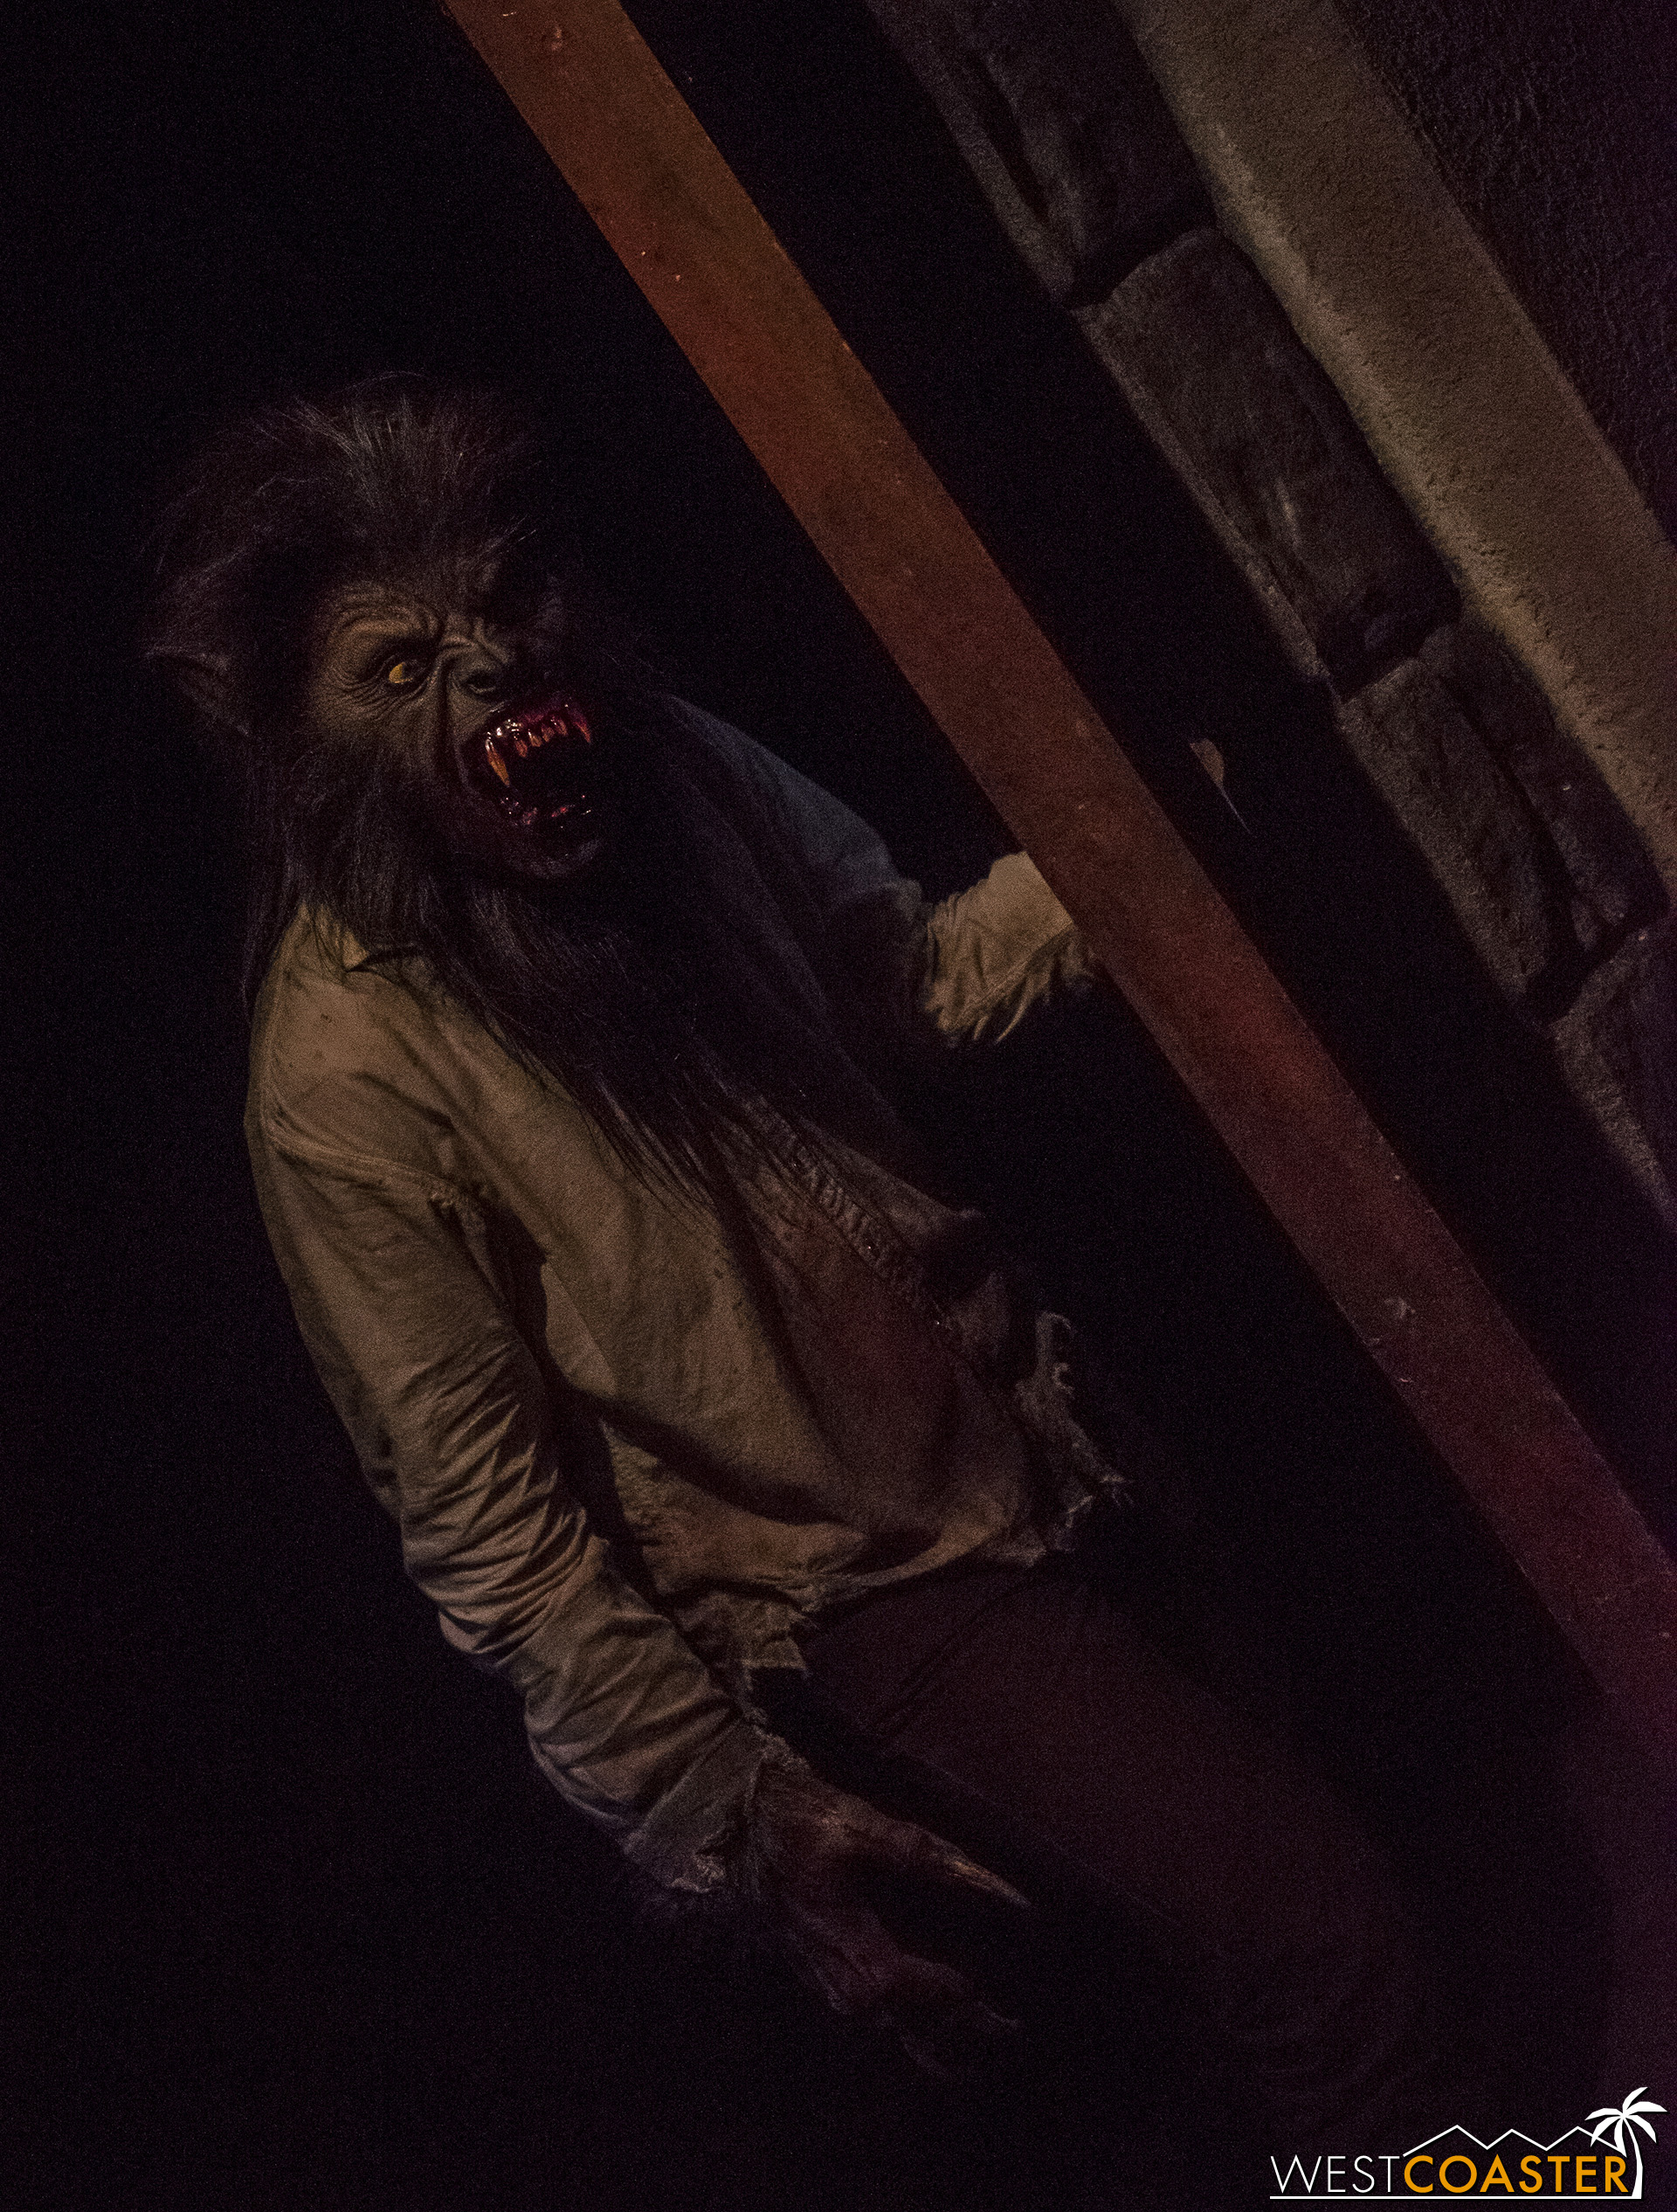 The Wolfman lurks in the shadows.